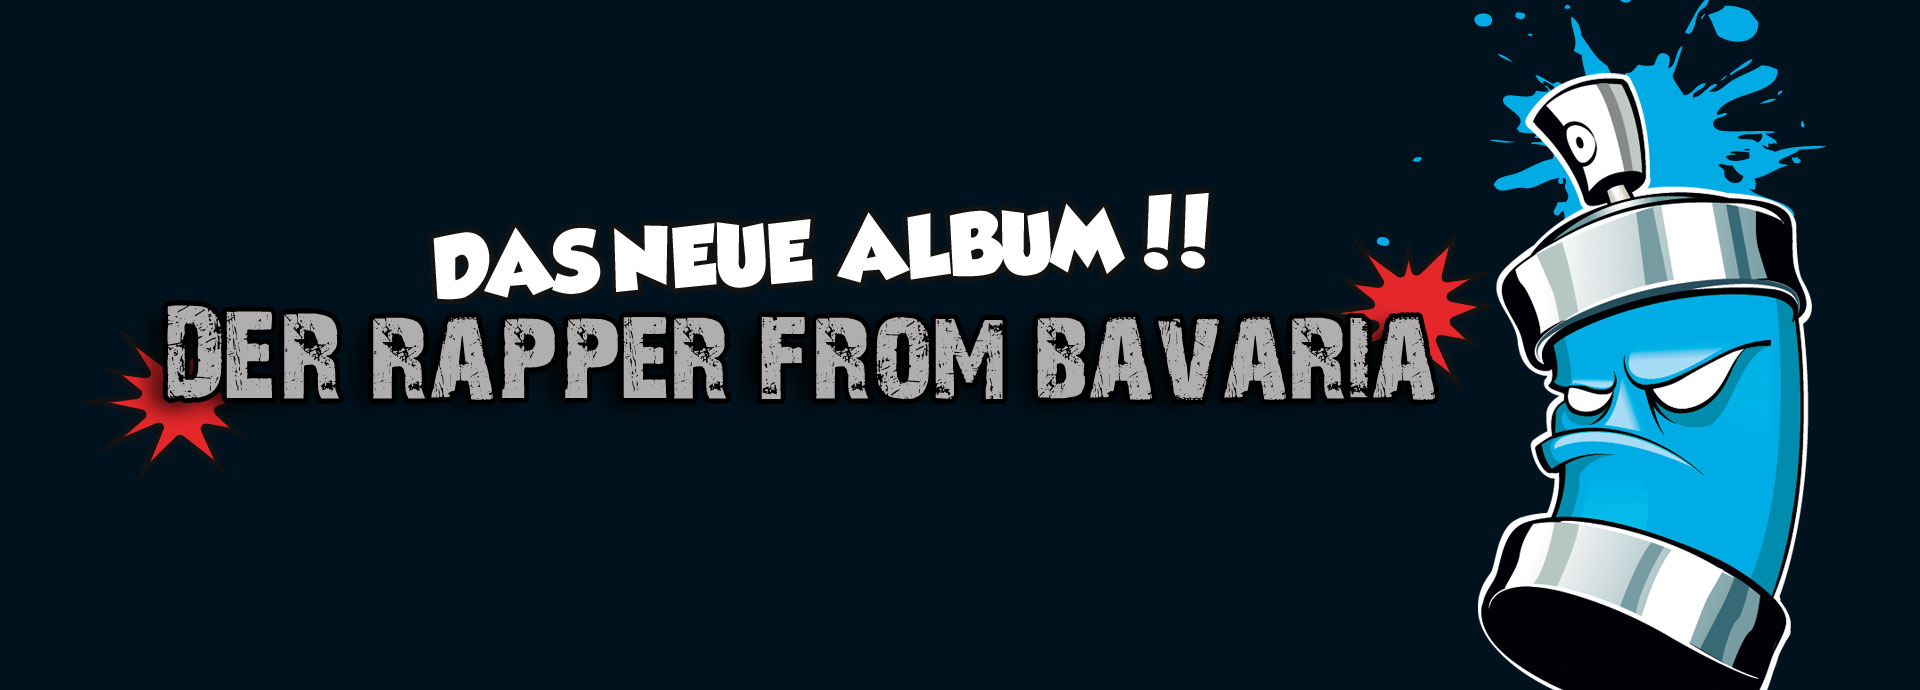 Slider-CD-Album-Der-Rapper-from-Bavaria